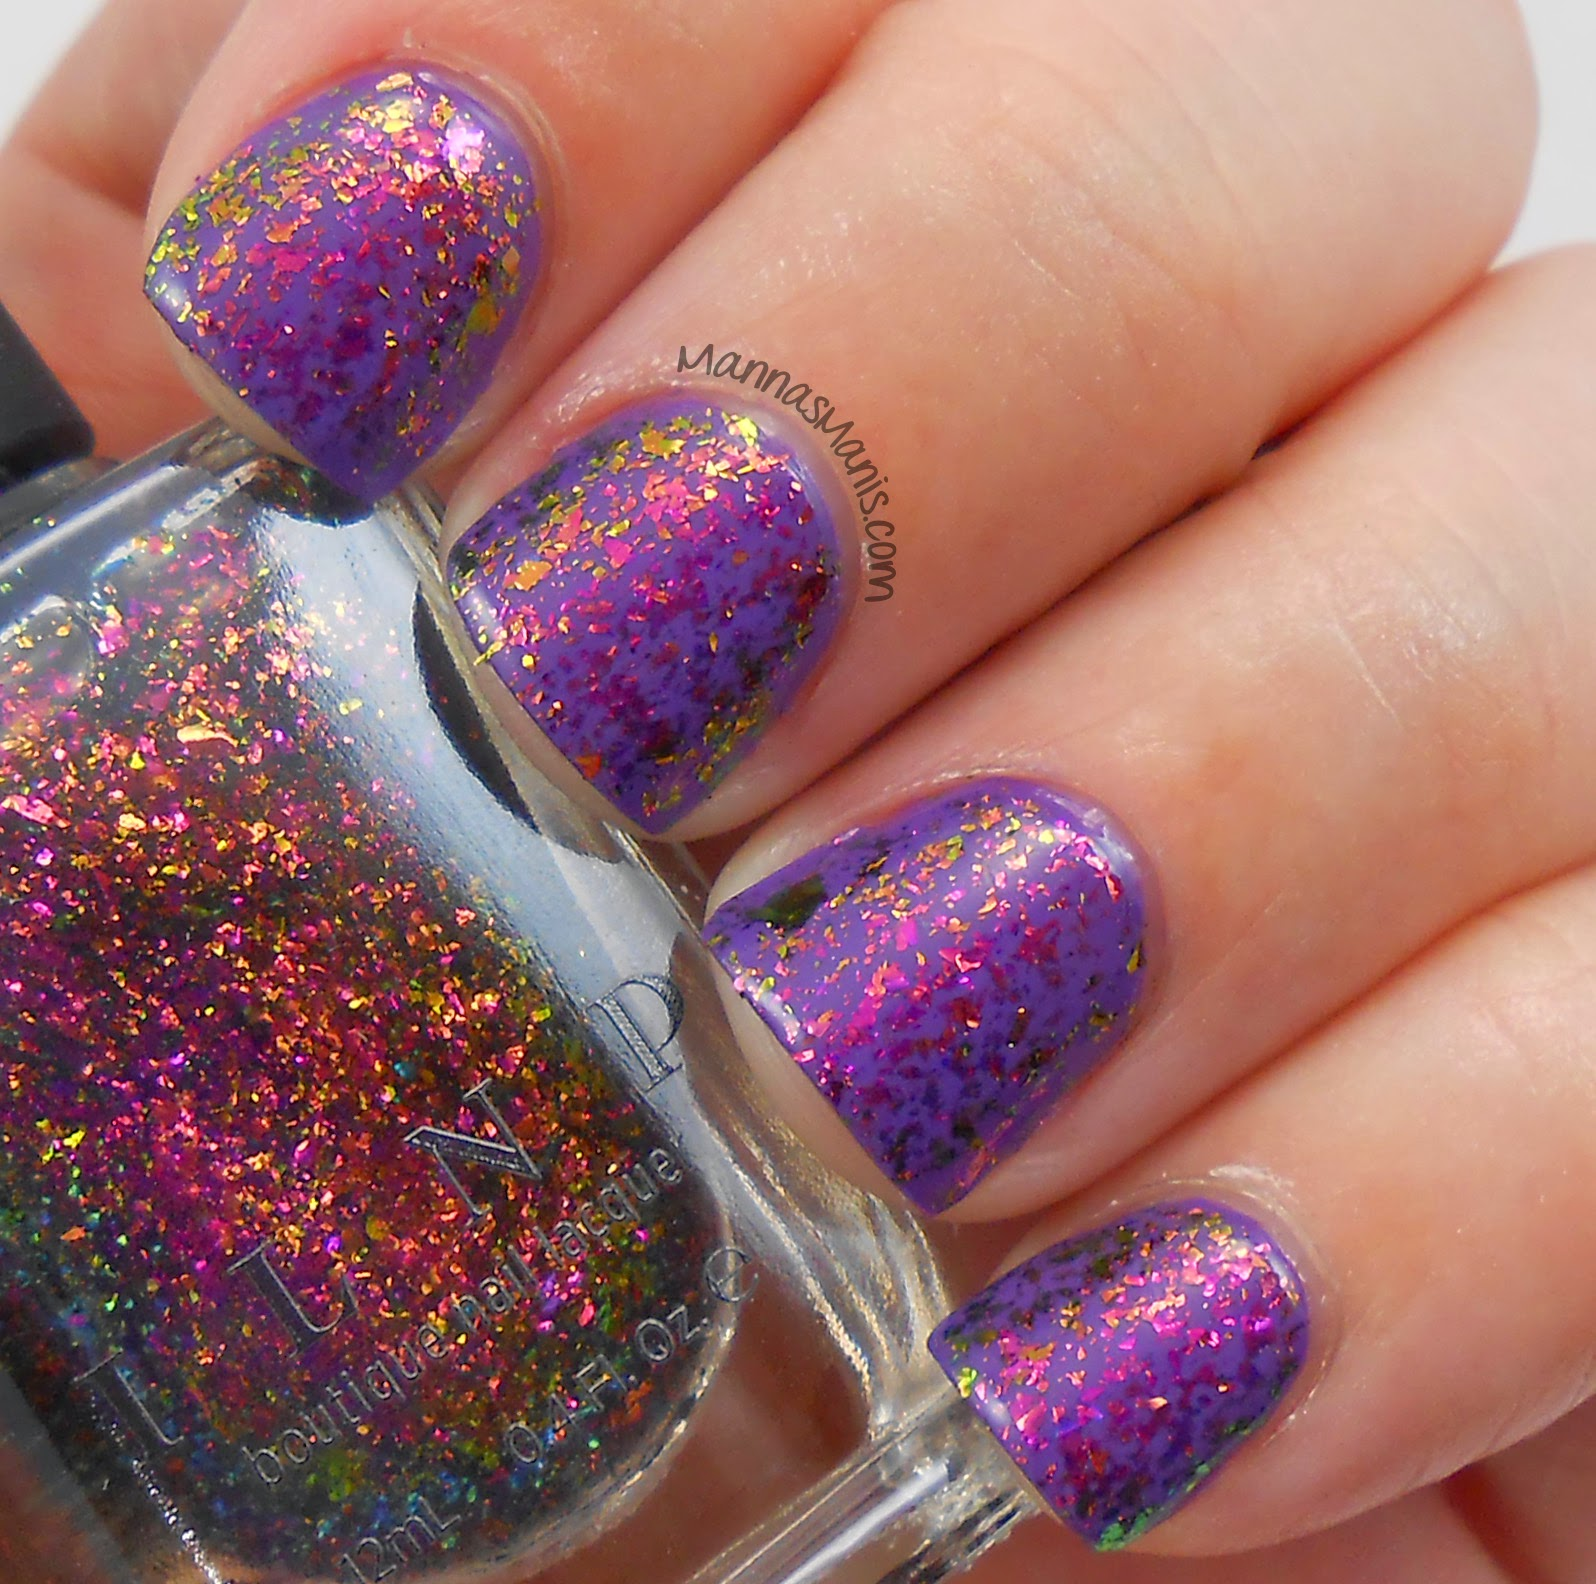 ILNP electric carnival, a multicolored flakie nail polish